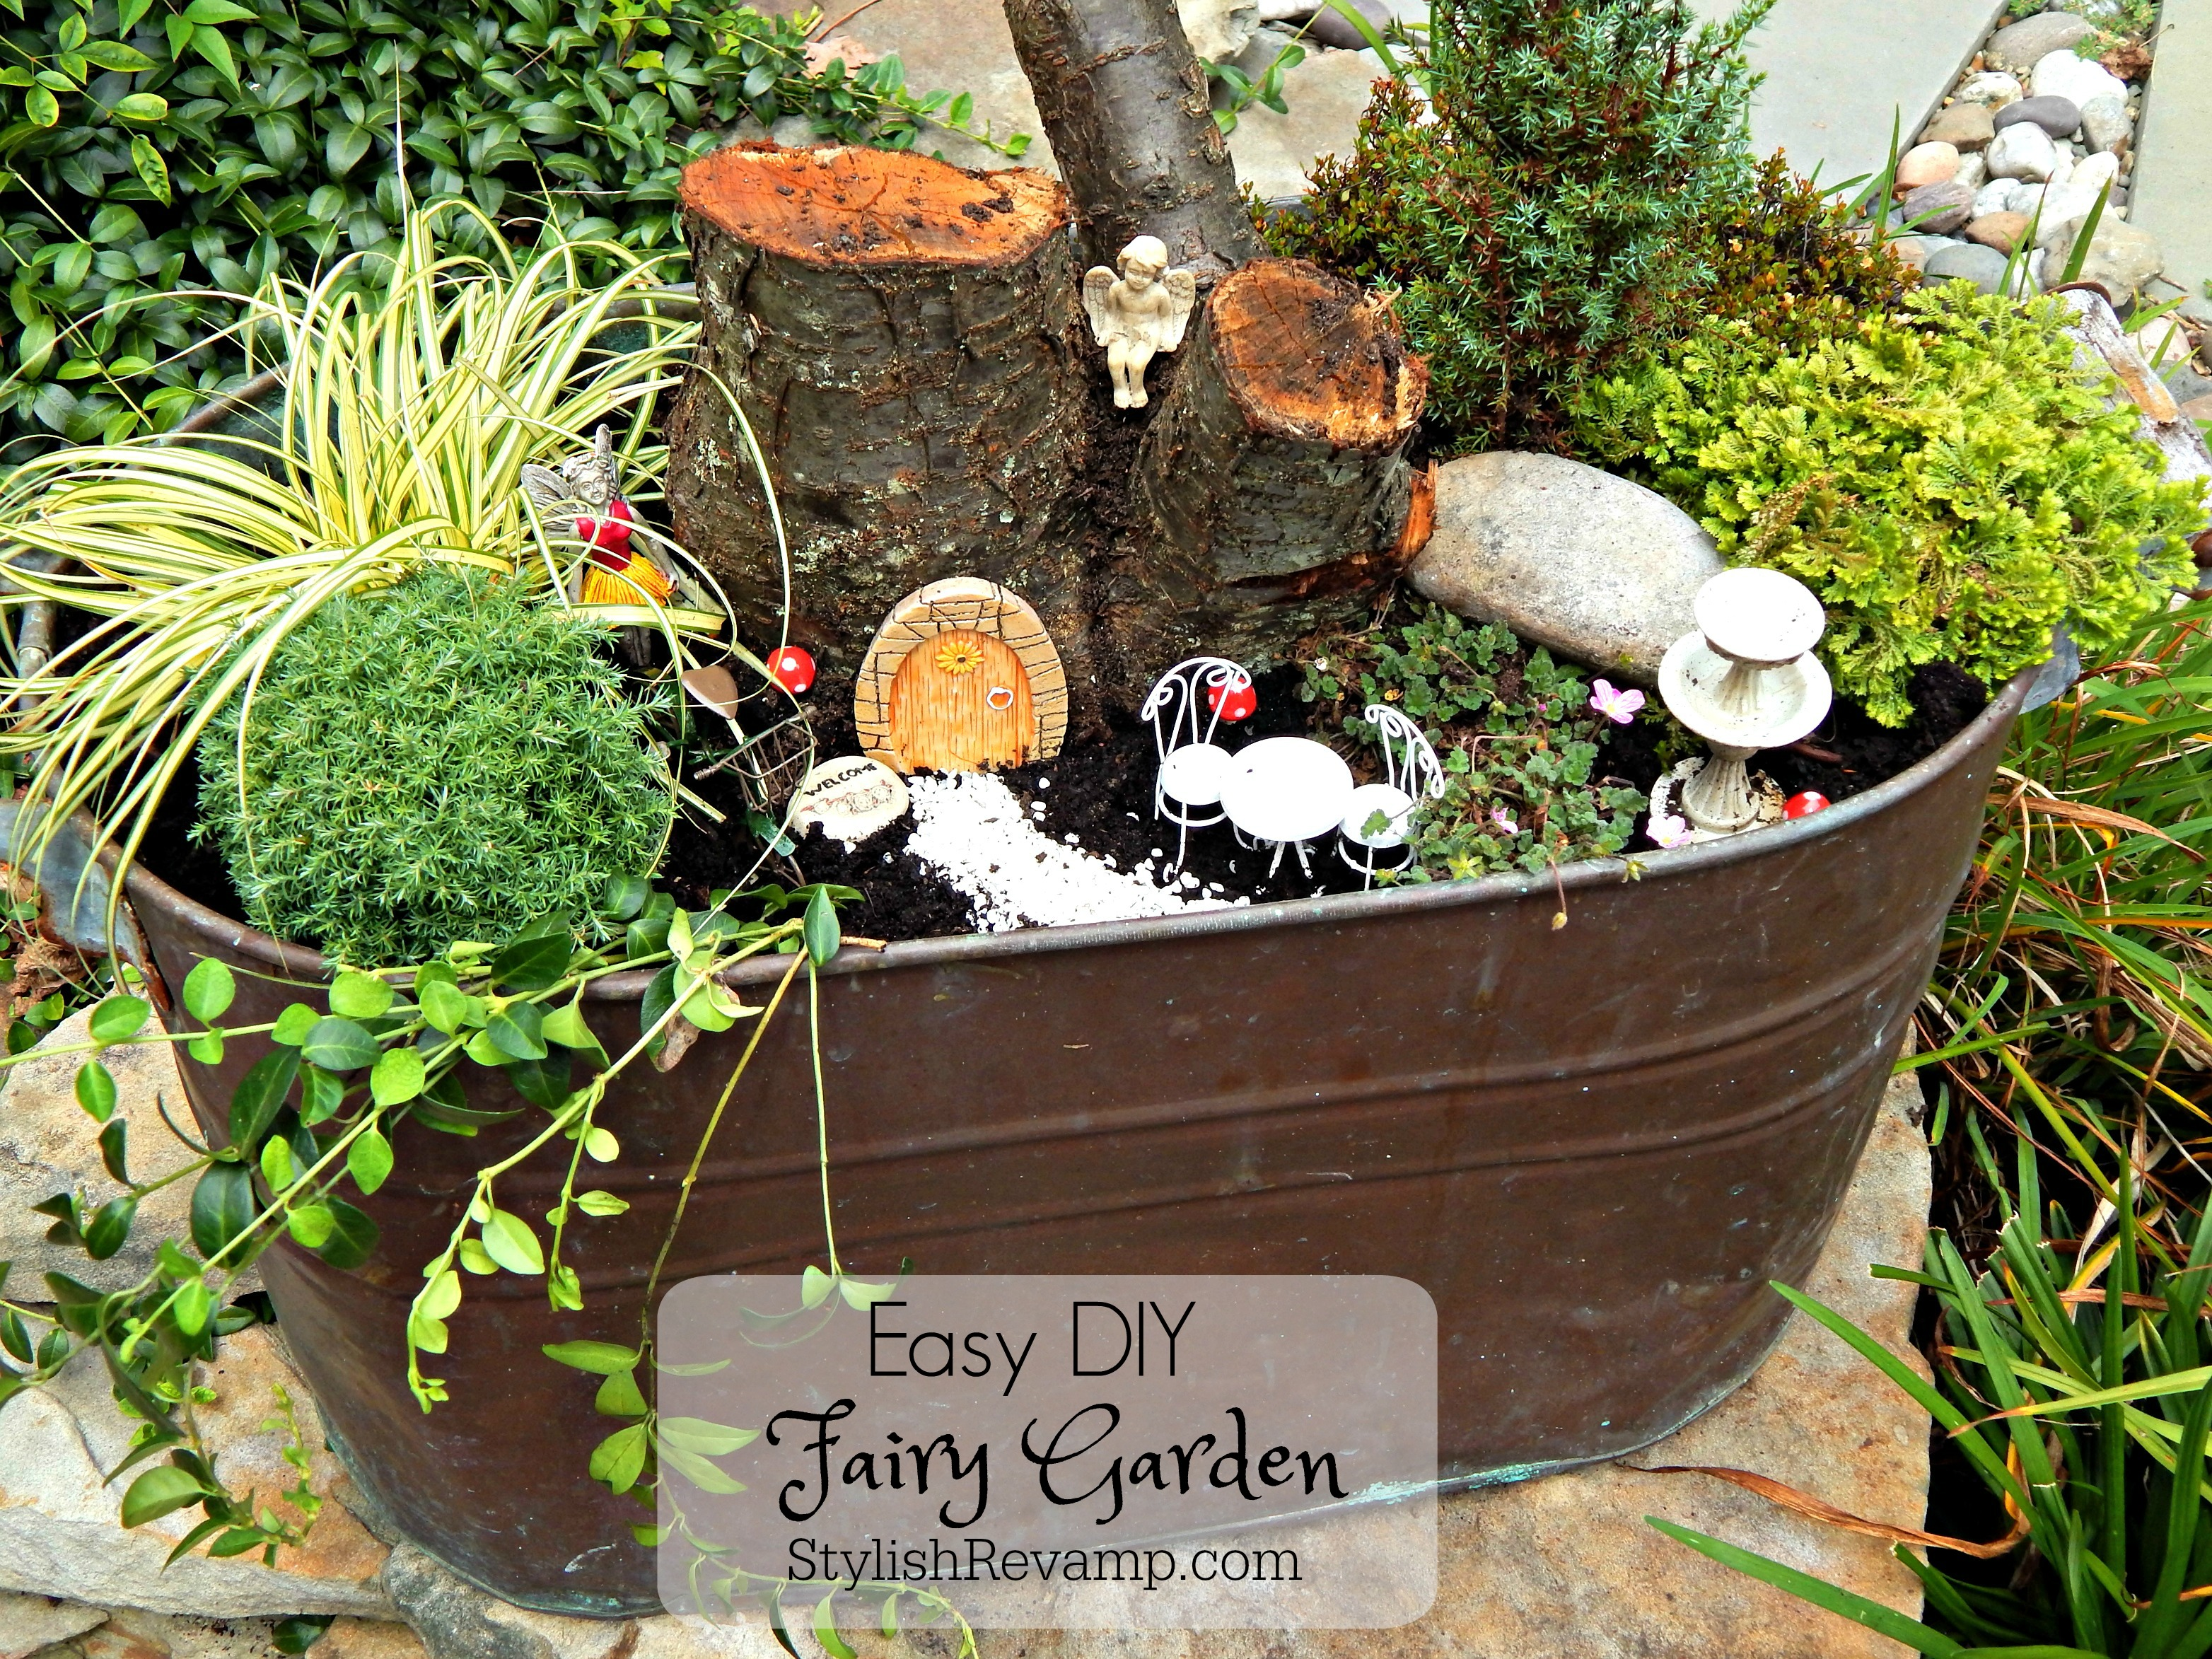 Fullsize Of Diy Fairy Garden